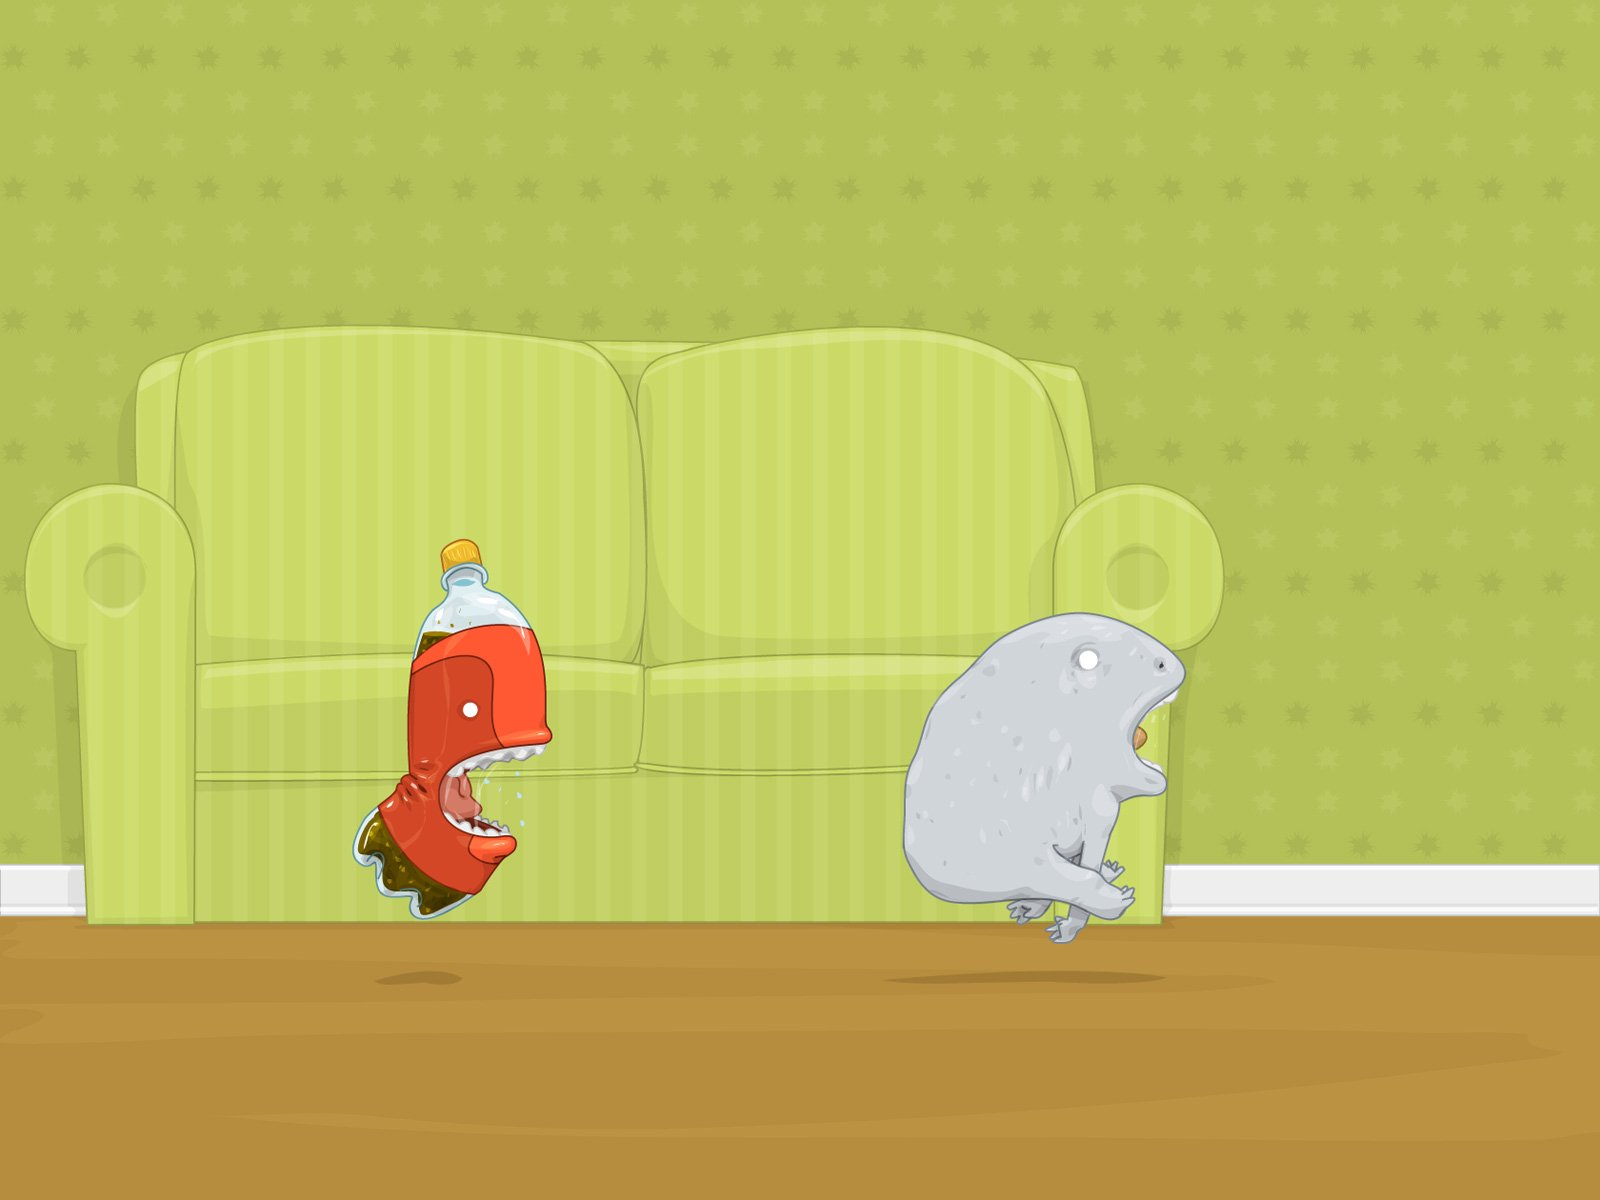 Aqua Teen Hunger Force Wallpaper And Background Image 1600x1200